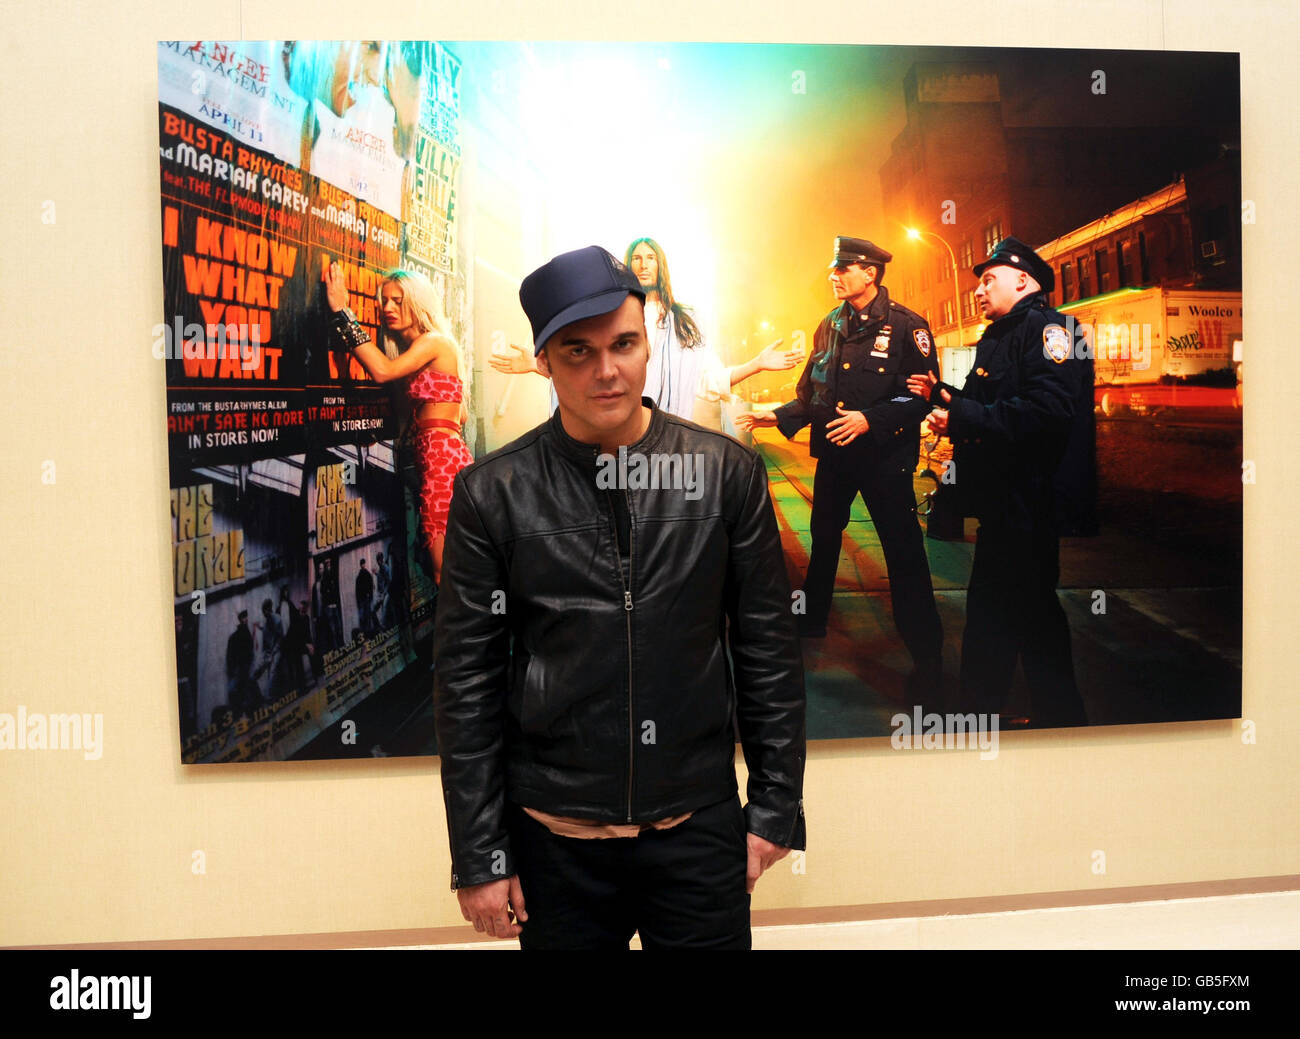 David LaChapelle exhibition private view - London - Stock Image